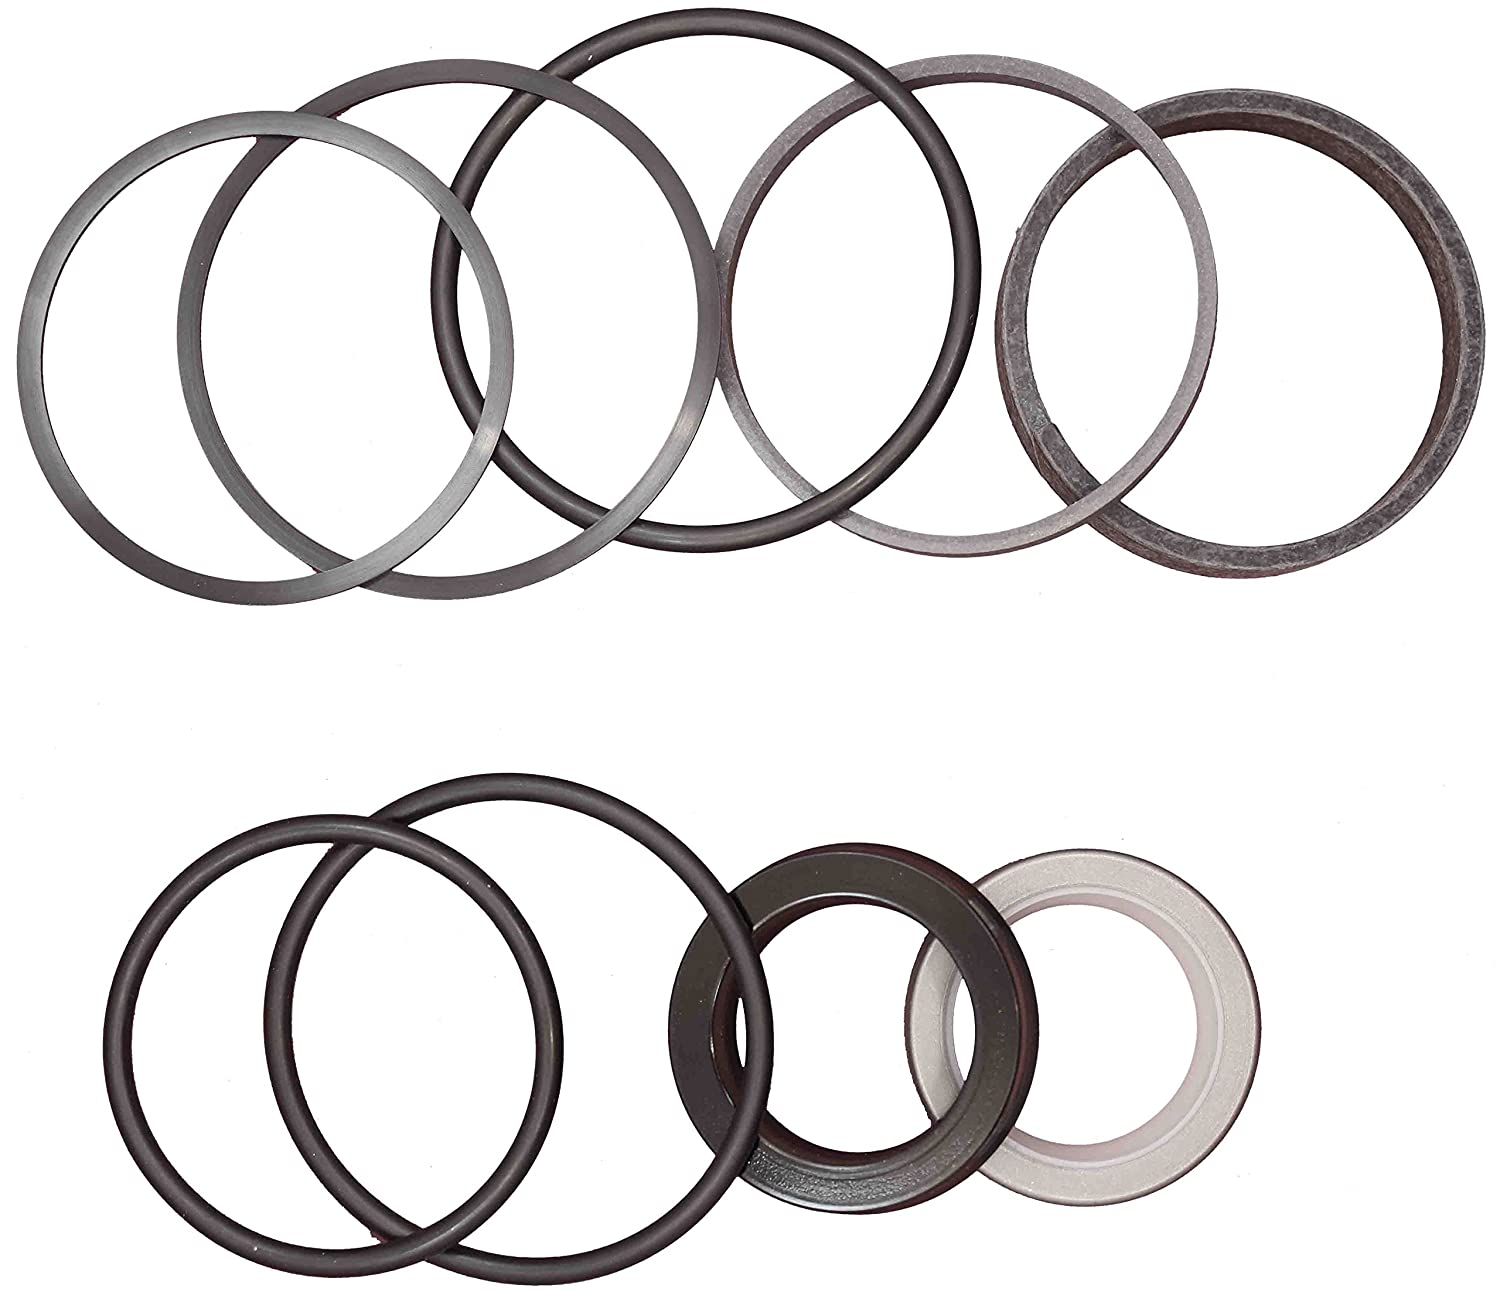 CASE 128728A1 HYDRAULIC CYLINDER SEAL KIT